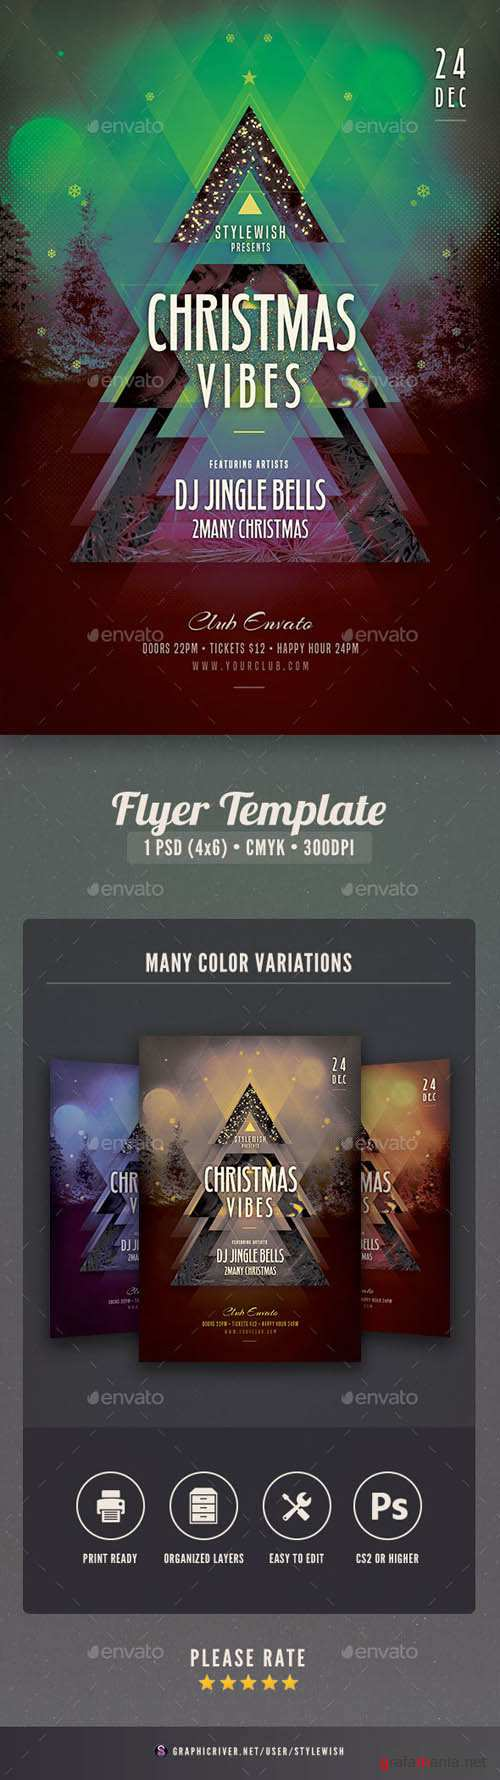 Christmas Vibes Flyer Template 18594700